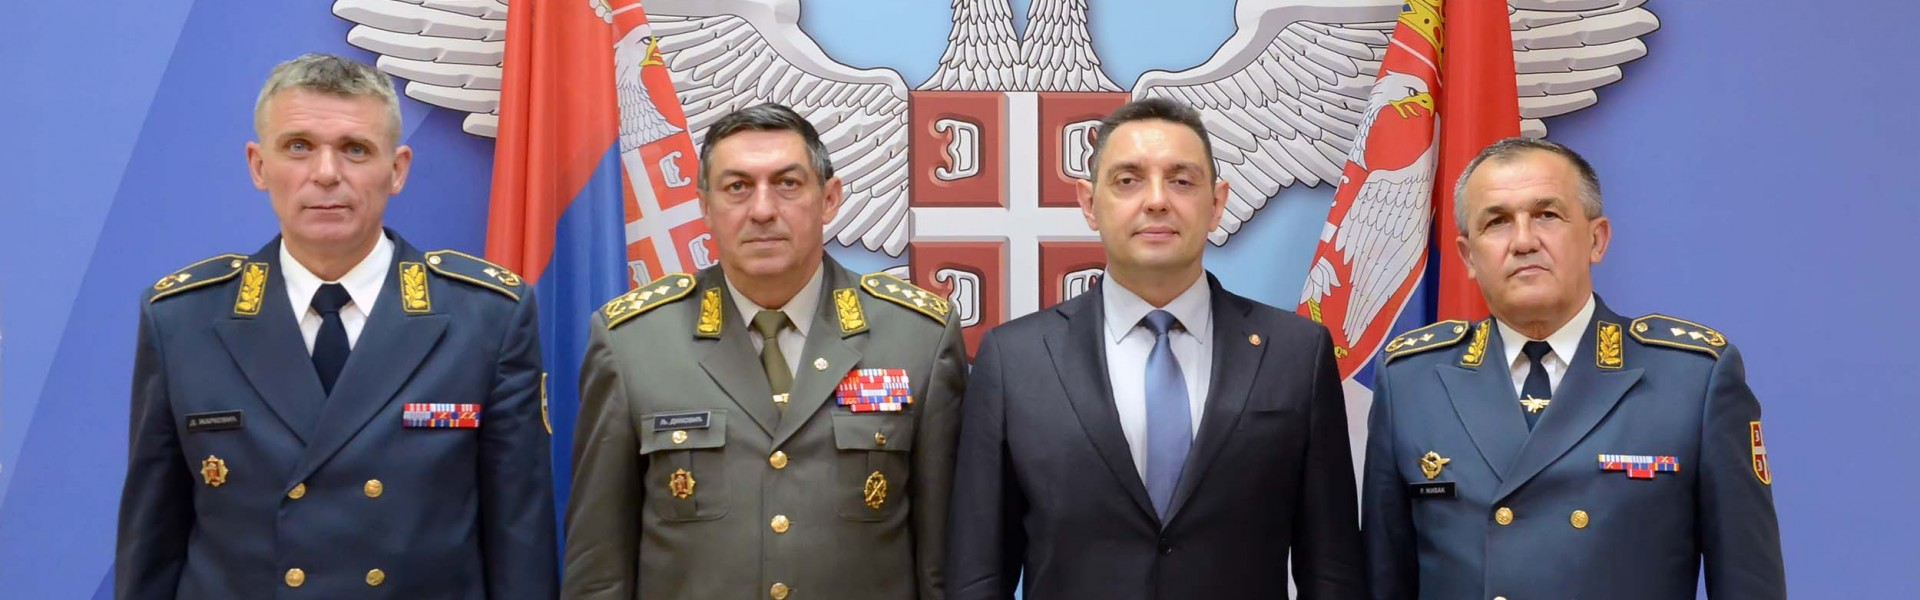 Commander Air Force and Air Defence Handover Ceremony